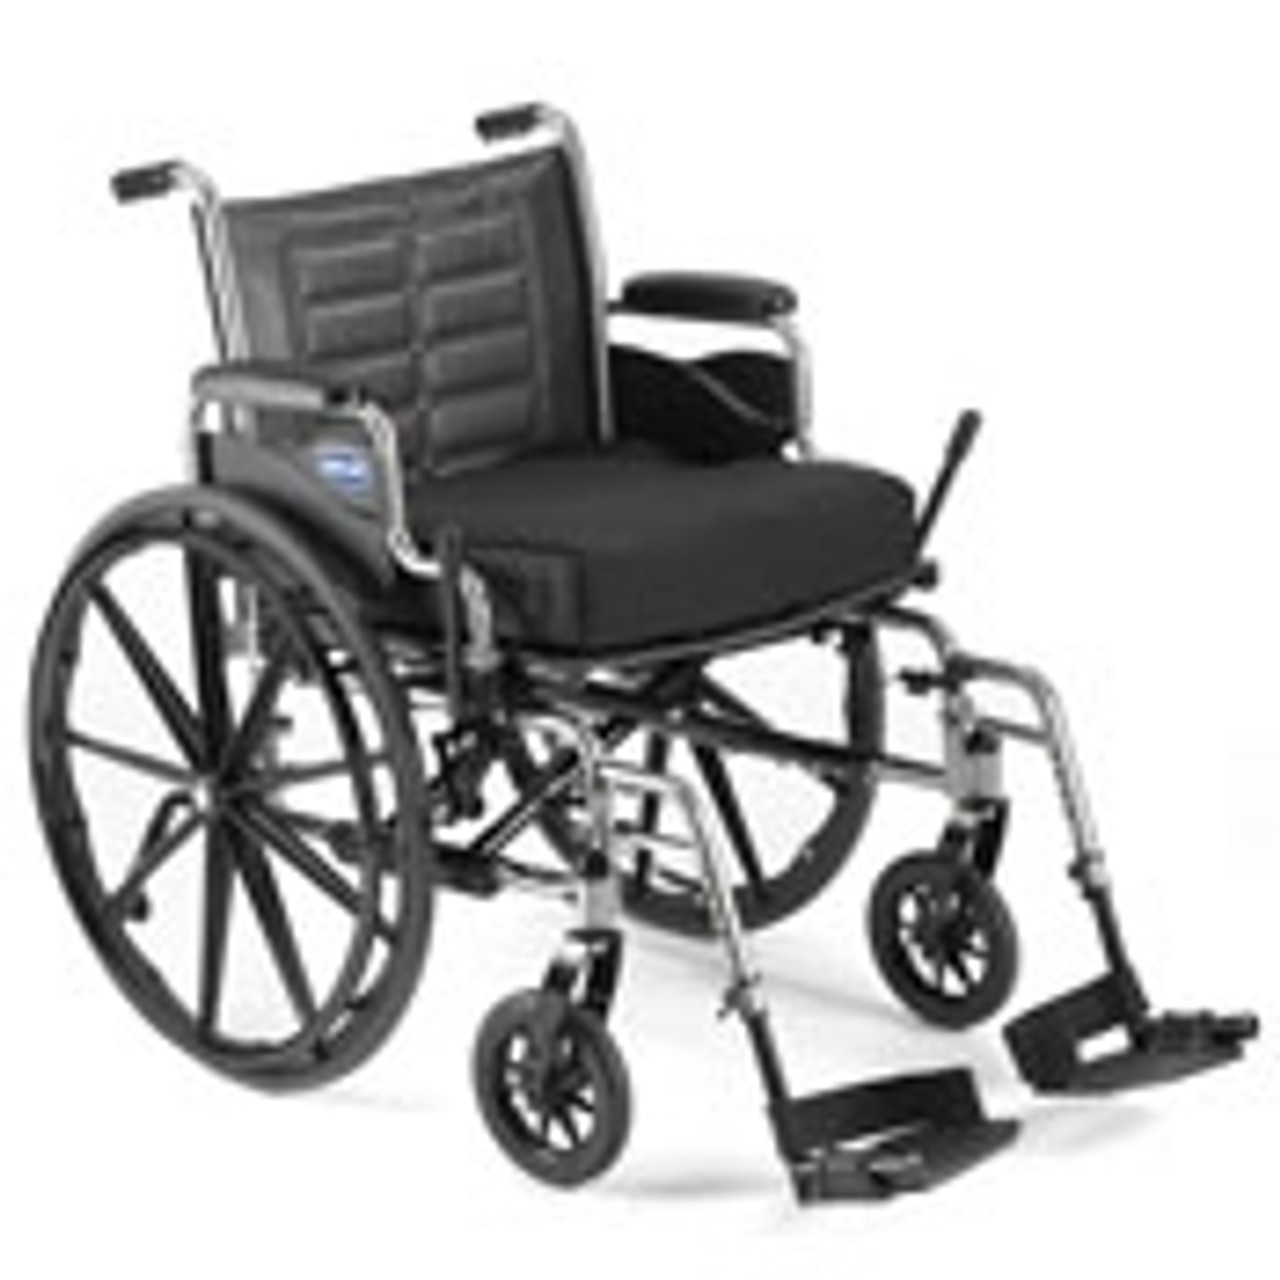 Wheelchairs & Transport Chairs - Bariatric